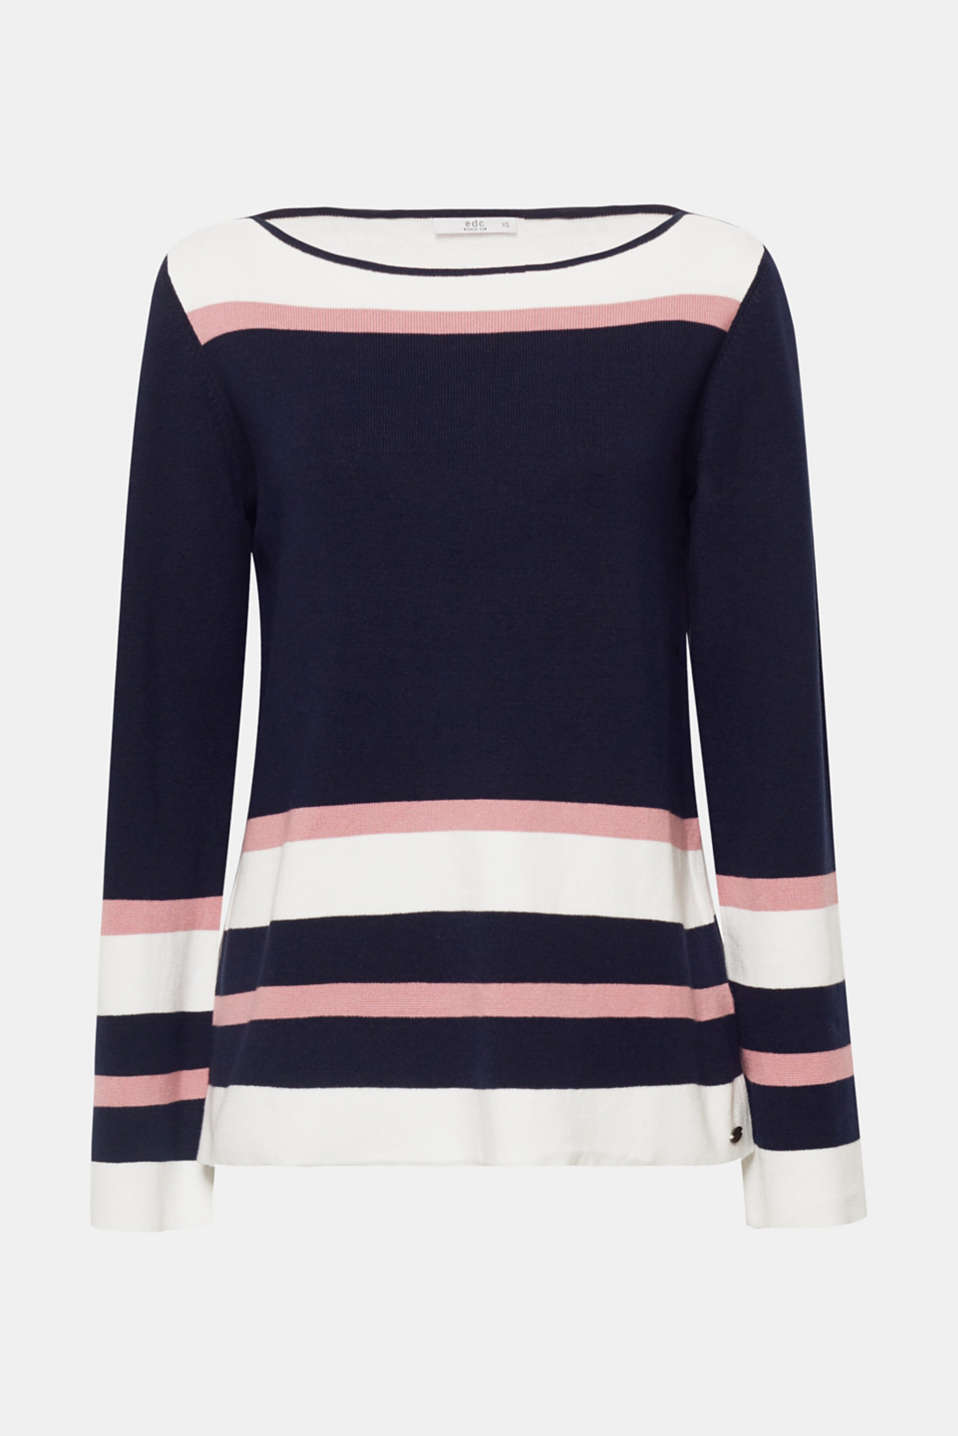 This casual, figure-skimming jumper in stocking stitch knit composed of high-quality cotton fabric is the perfect companion for relaxed, everyday looks.